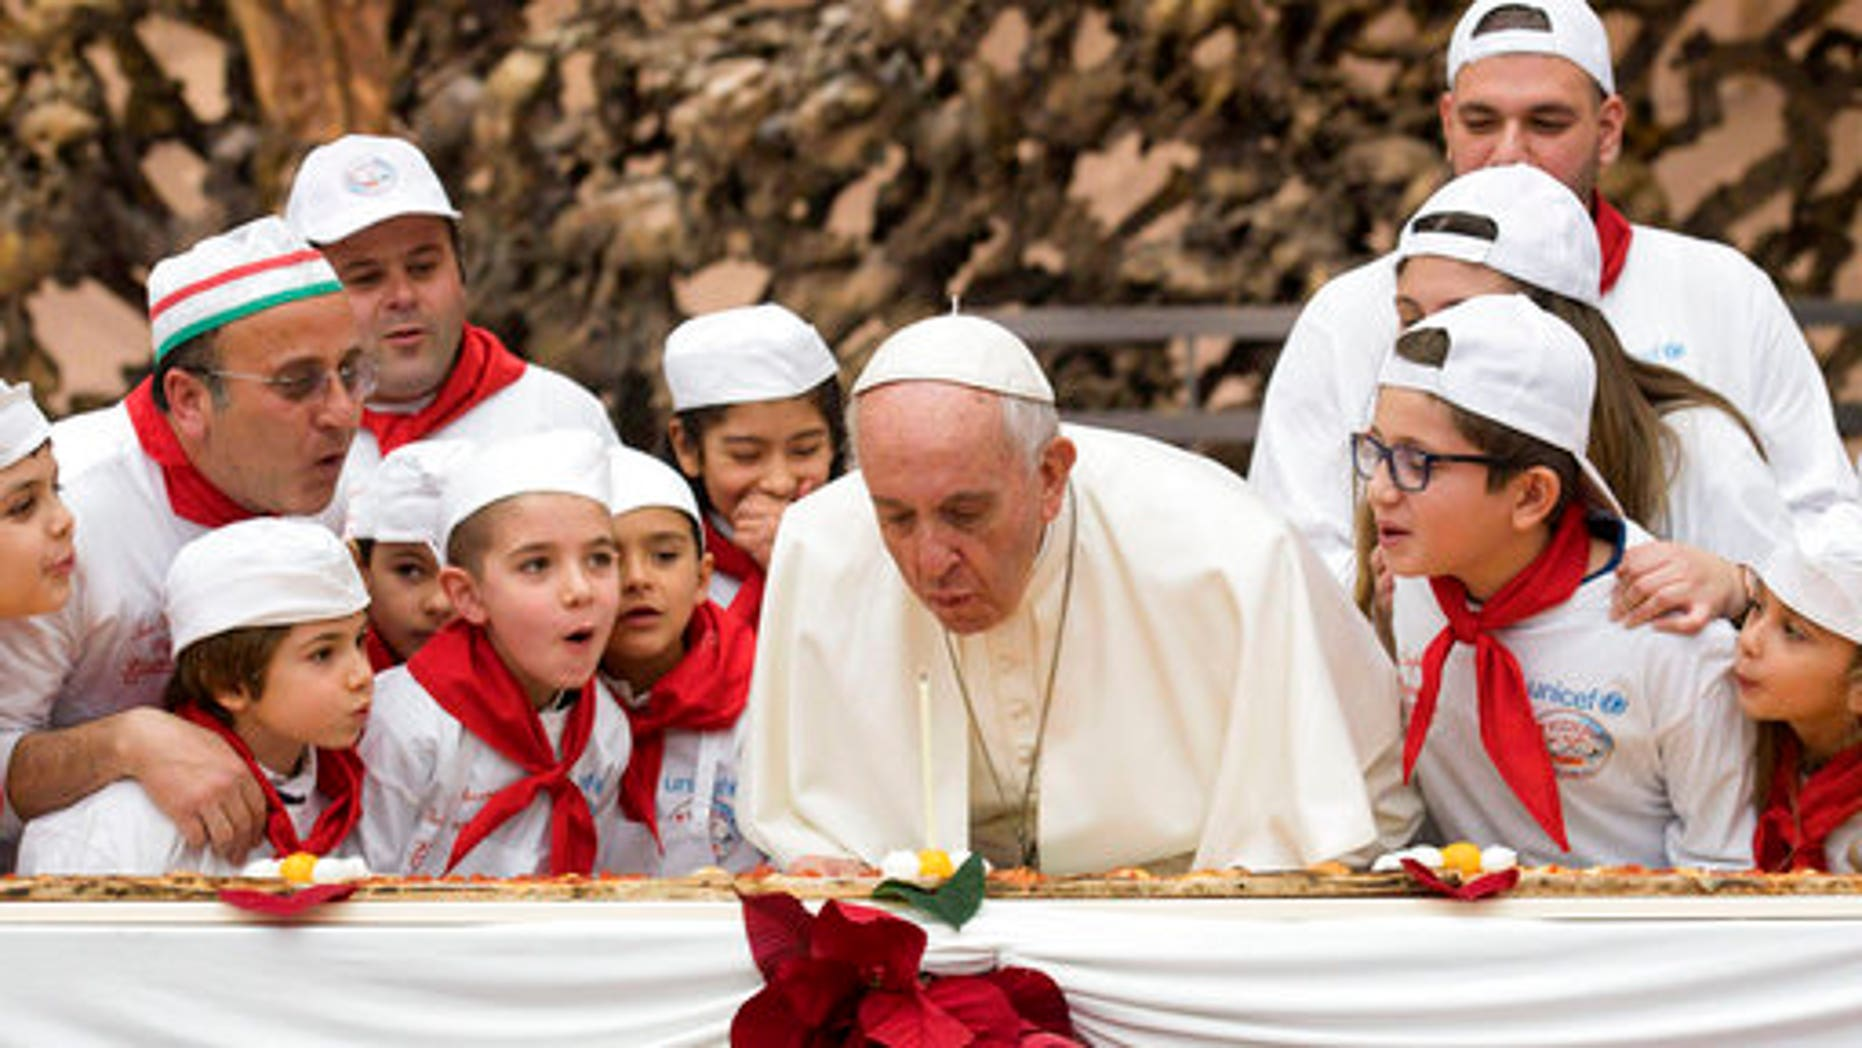 Pope Francis blows out a candle on pizza to celebrate his 81st birthday during a private audience with children at the Vatican.